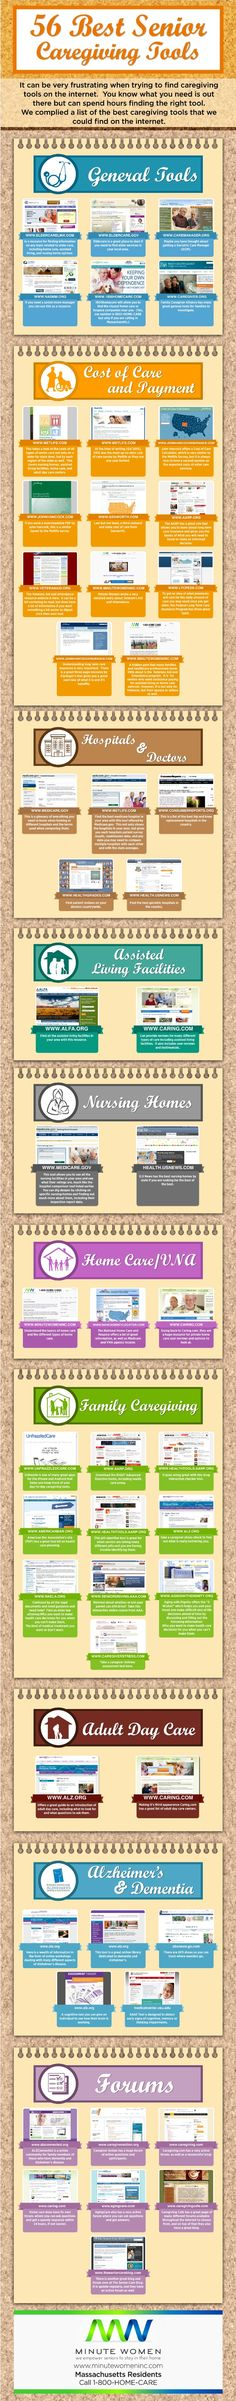 56 Best Senior #Caregiving Tools [Infographic]